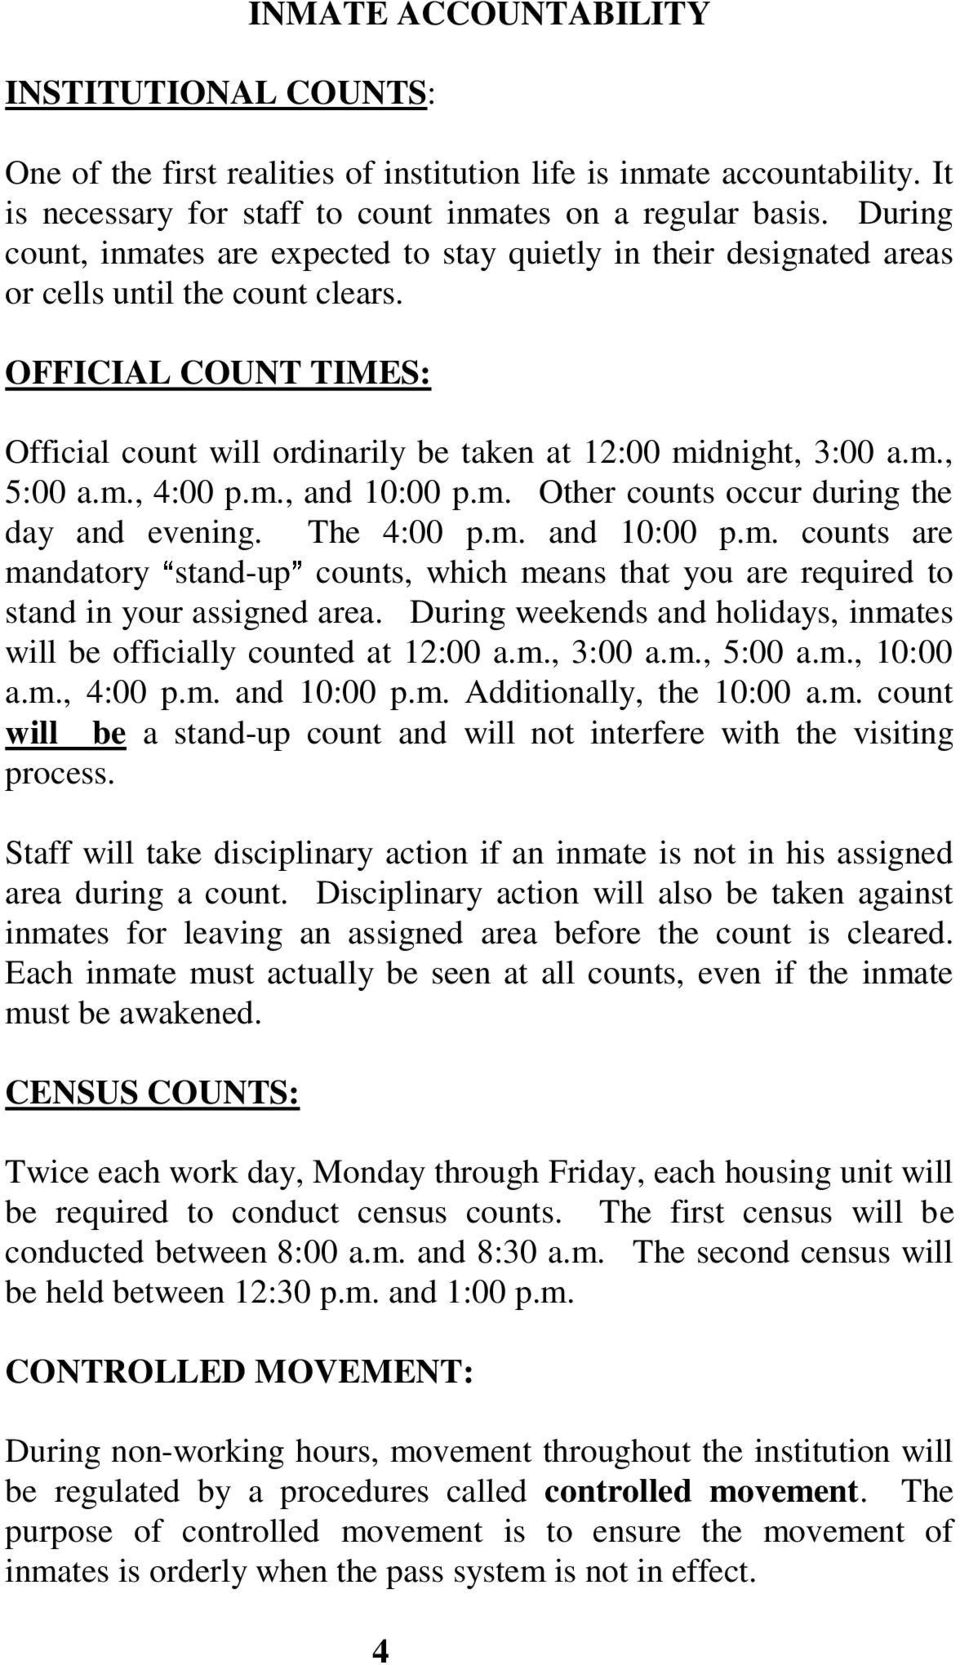 m., 4:00 p.m., and 10:00 p.m. Other counts occur during the day and evening. The 4:00 p.m. and 10:00 p.m. counts are mandatory stand-up counts, which means that you are required to stand in your assigned area.